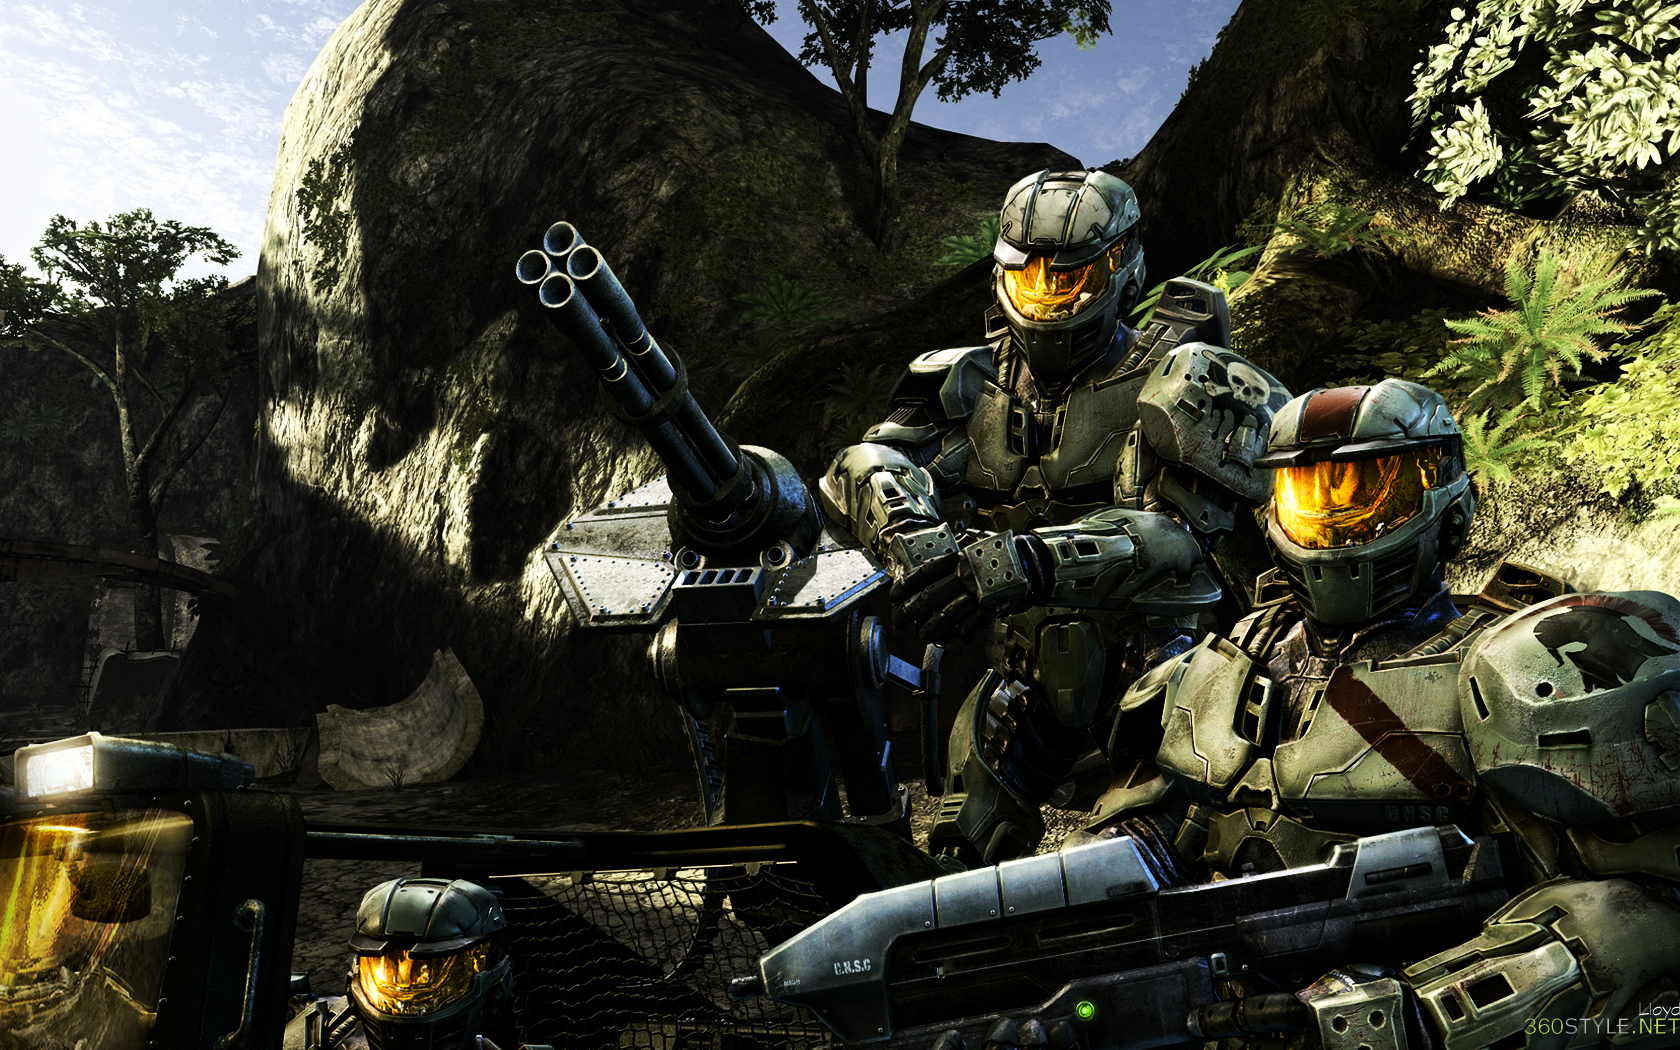 Halo Wars 2 Wallpaper: Image - Halo Wars Wallpaper 2 By Igotgame1075.jpg